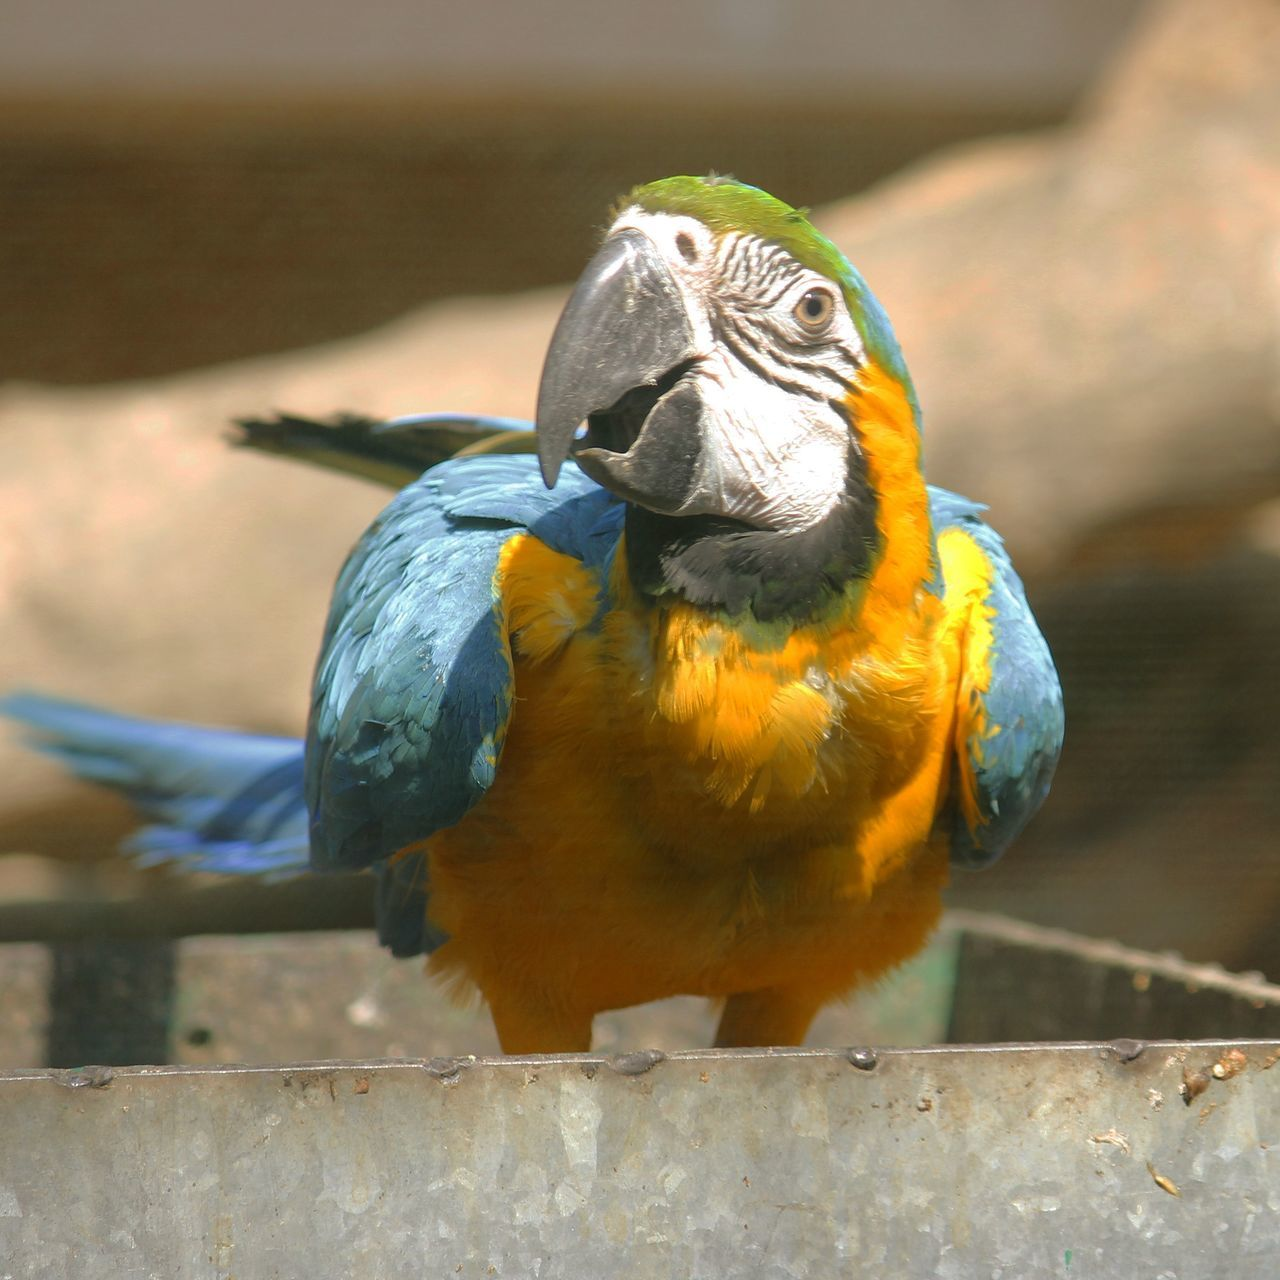 animal themes, one animal, bird, animals in the wild, focus on foreground, close-up, wildlife, beak, animal head, perching, yellow, day, no people, parrot, front view, outdoors, animals in captivity, nature, animal body part, zoo